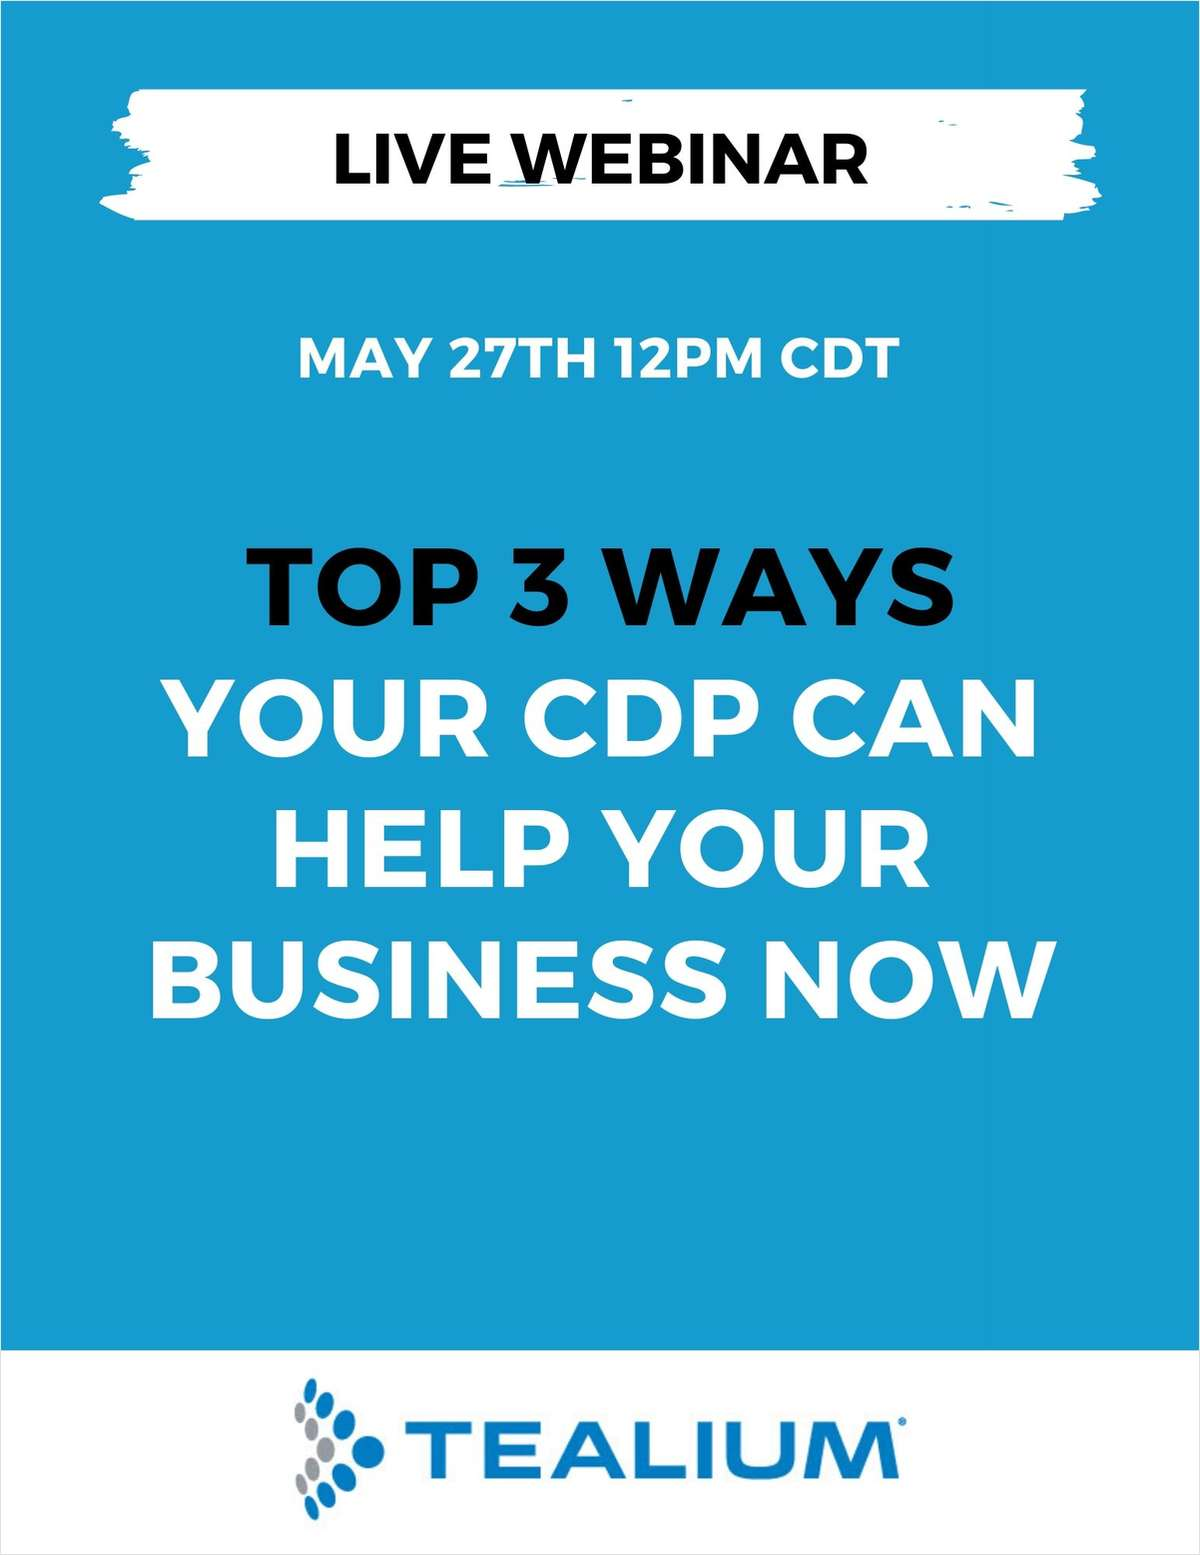 Top 3 Ways Your Consumer Data Platform (CDP) Can Help Your Business Now